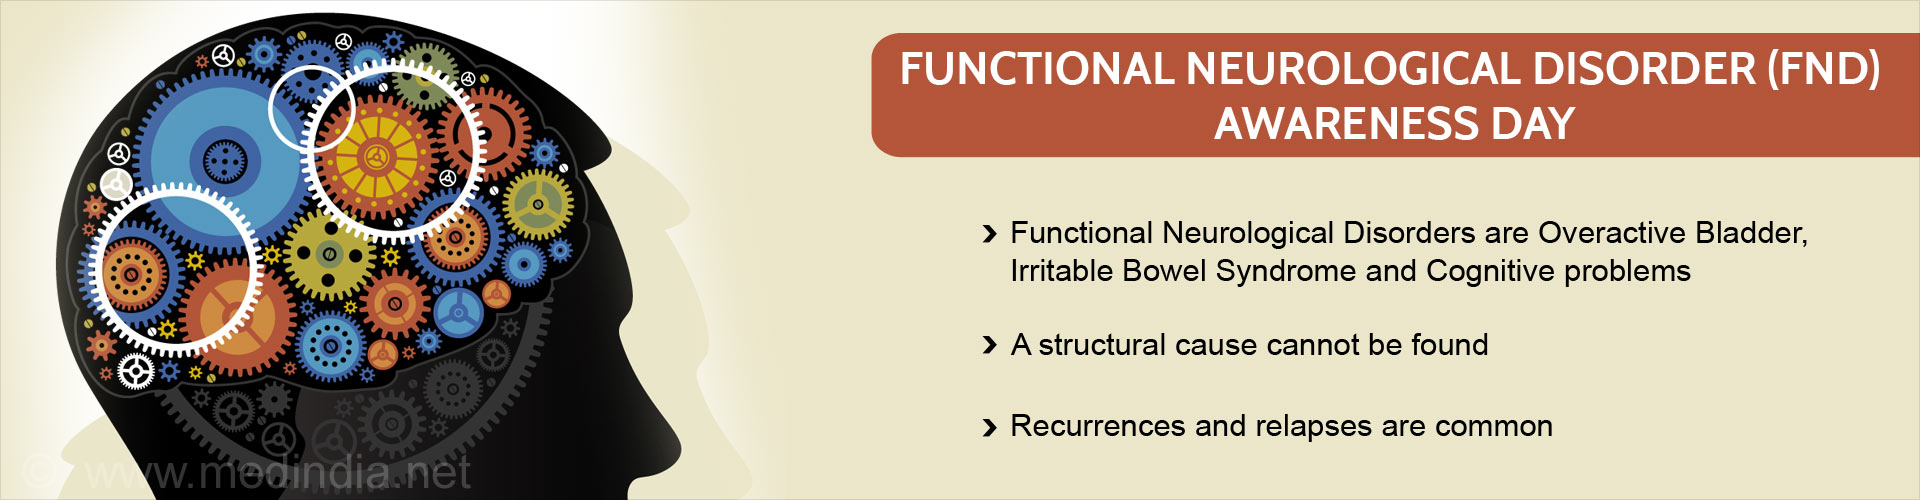 Functional neurological disorder (FND) Awareness Day - Functional neurological disorder are overactive bladder, irritable bowel syndrome and cognitive problems - A structural cause cannot be found - Recurrences are relapses are common